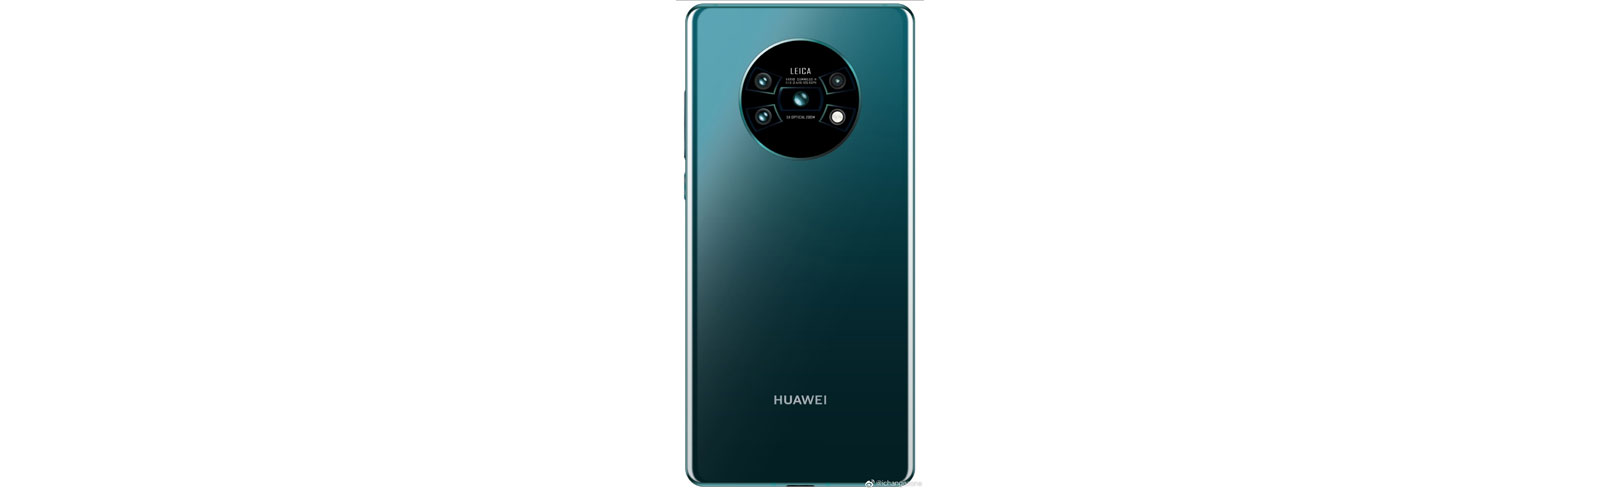 Huawei Mate 30 might be the third Huawei 5G smartphone